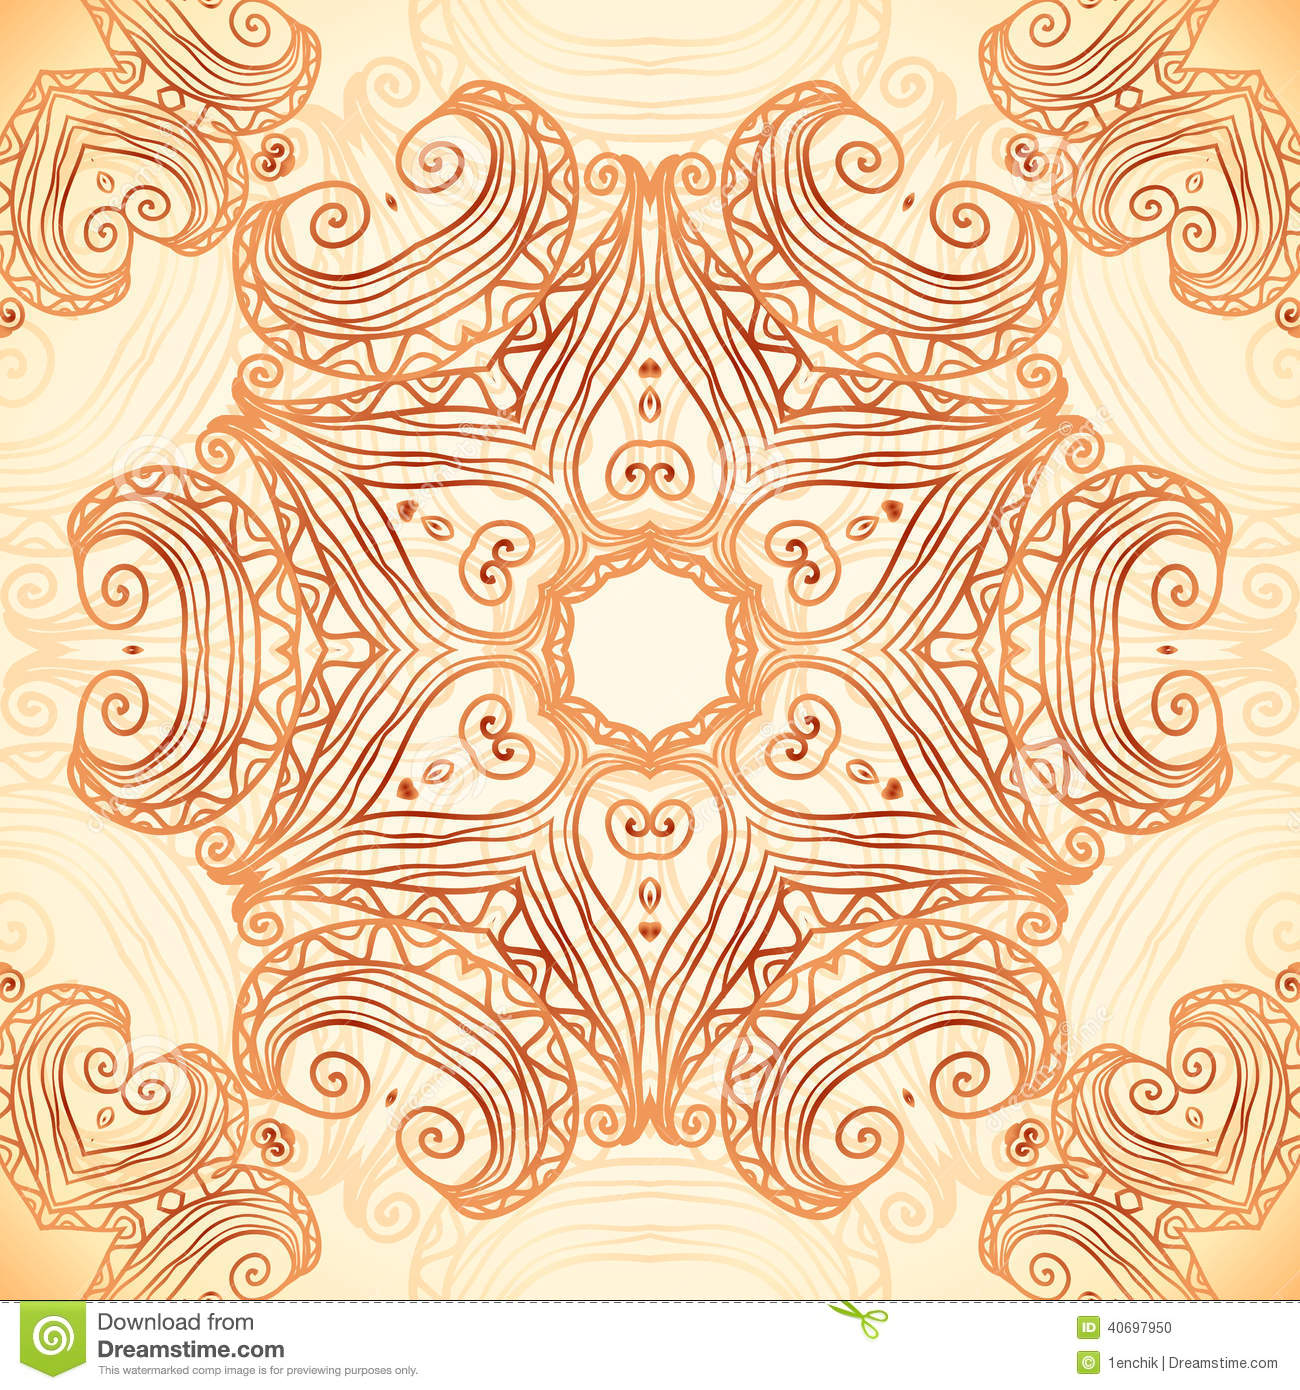 Ornate vintage vector background in mehndi style royalty free stock - Royalty Free Stock Photo Download Ornate Vintage Template In Indian Mehndi Style Stock Vector